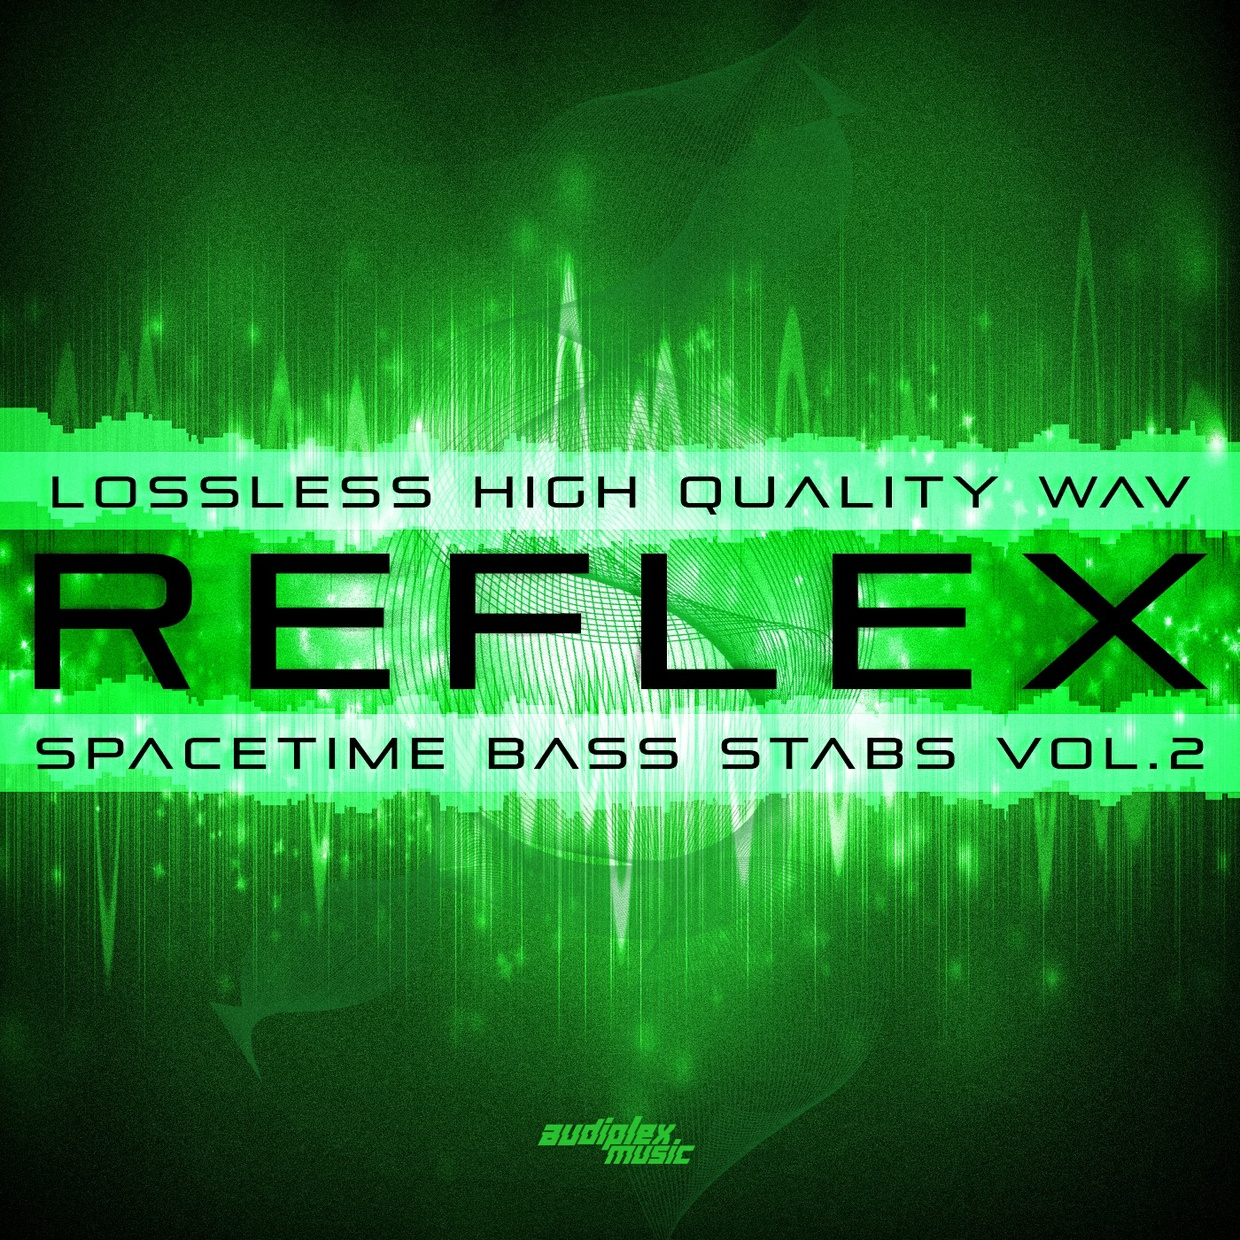 Reflex - Spacetime Bass Stabs Vol.2